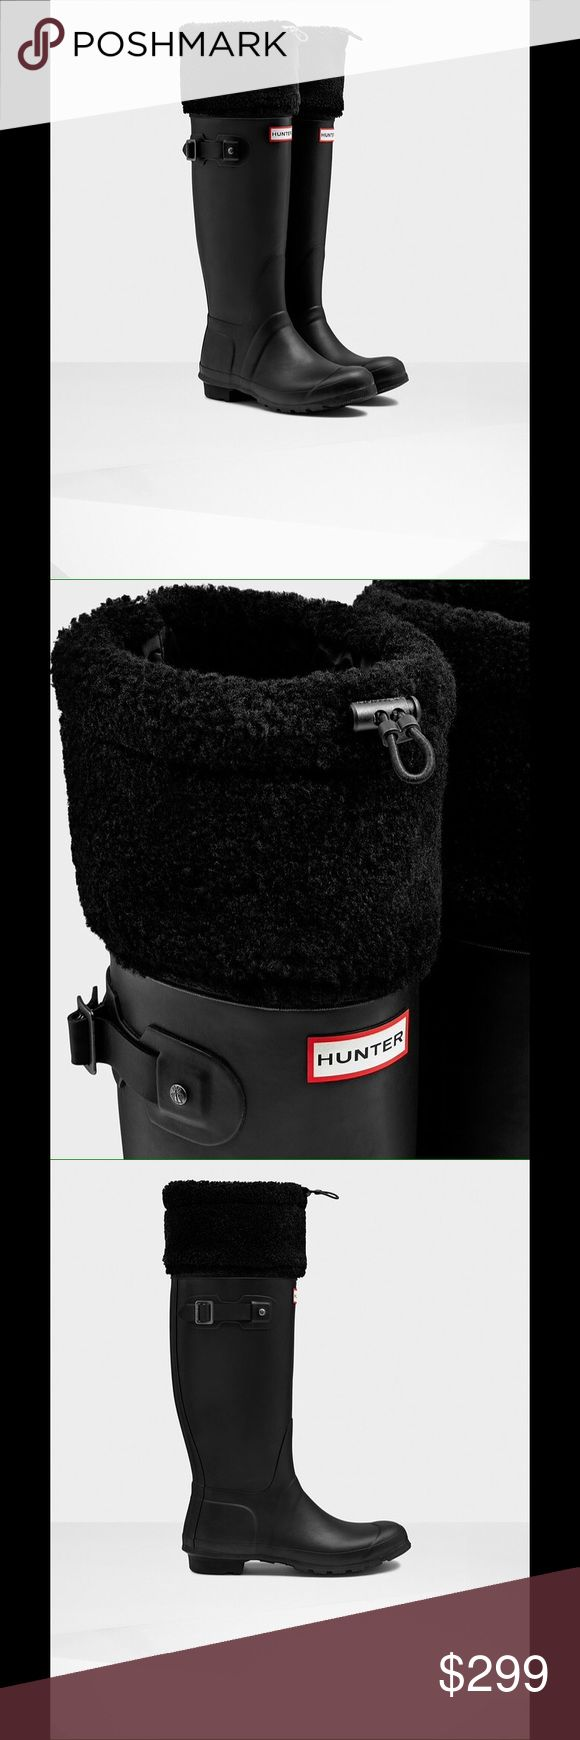 """Hunter Limited Shearling Fur-Cuff Welly rain Boots Hunter Limited Edition rubber welly boots with dyed sheep shearling (Australia) fur cuff. Comes with a Hunter branded drawstring bag. 1"""" flat heel, 15""""H shaft. Very stylish, chic, and warm. Perfect for the cold months / holiday seasons. New and never worn. Hunter Boots Shoes Winter & Rain Boots"""